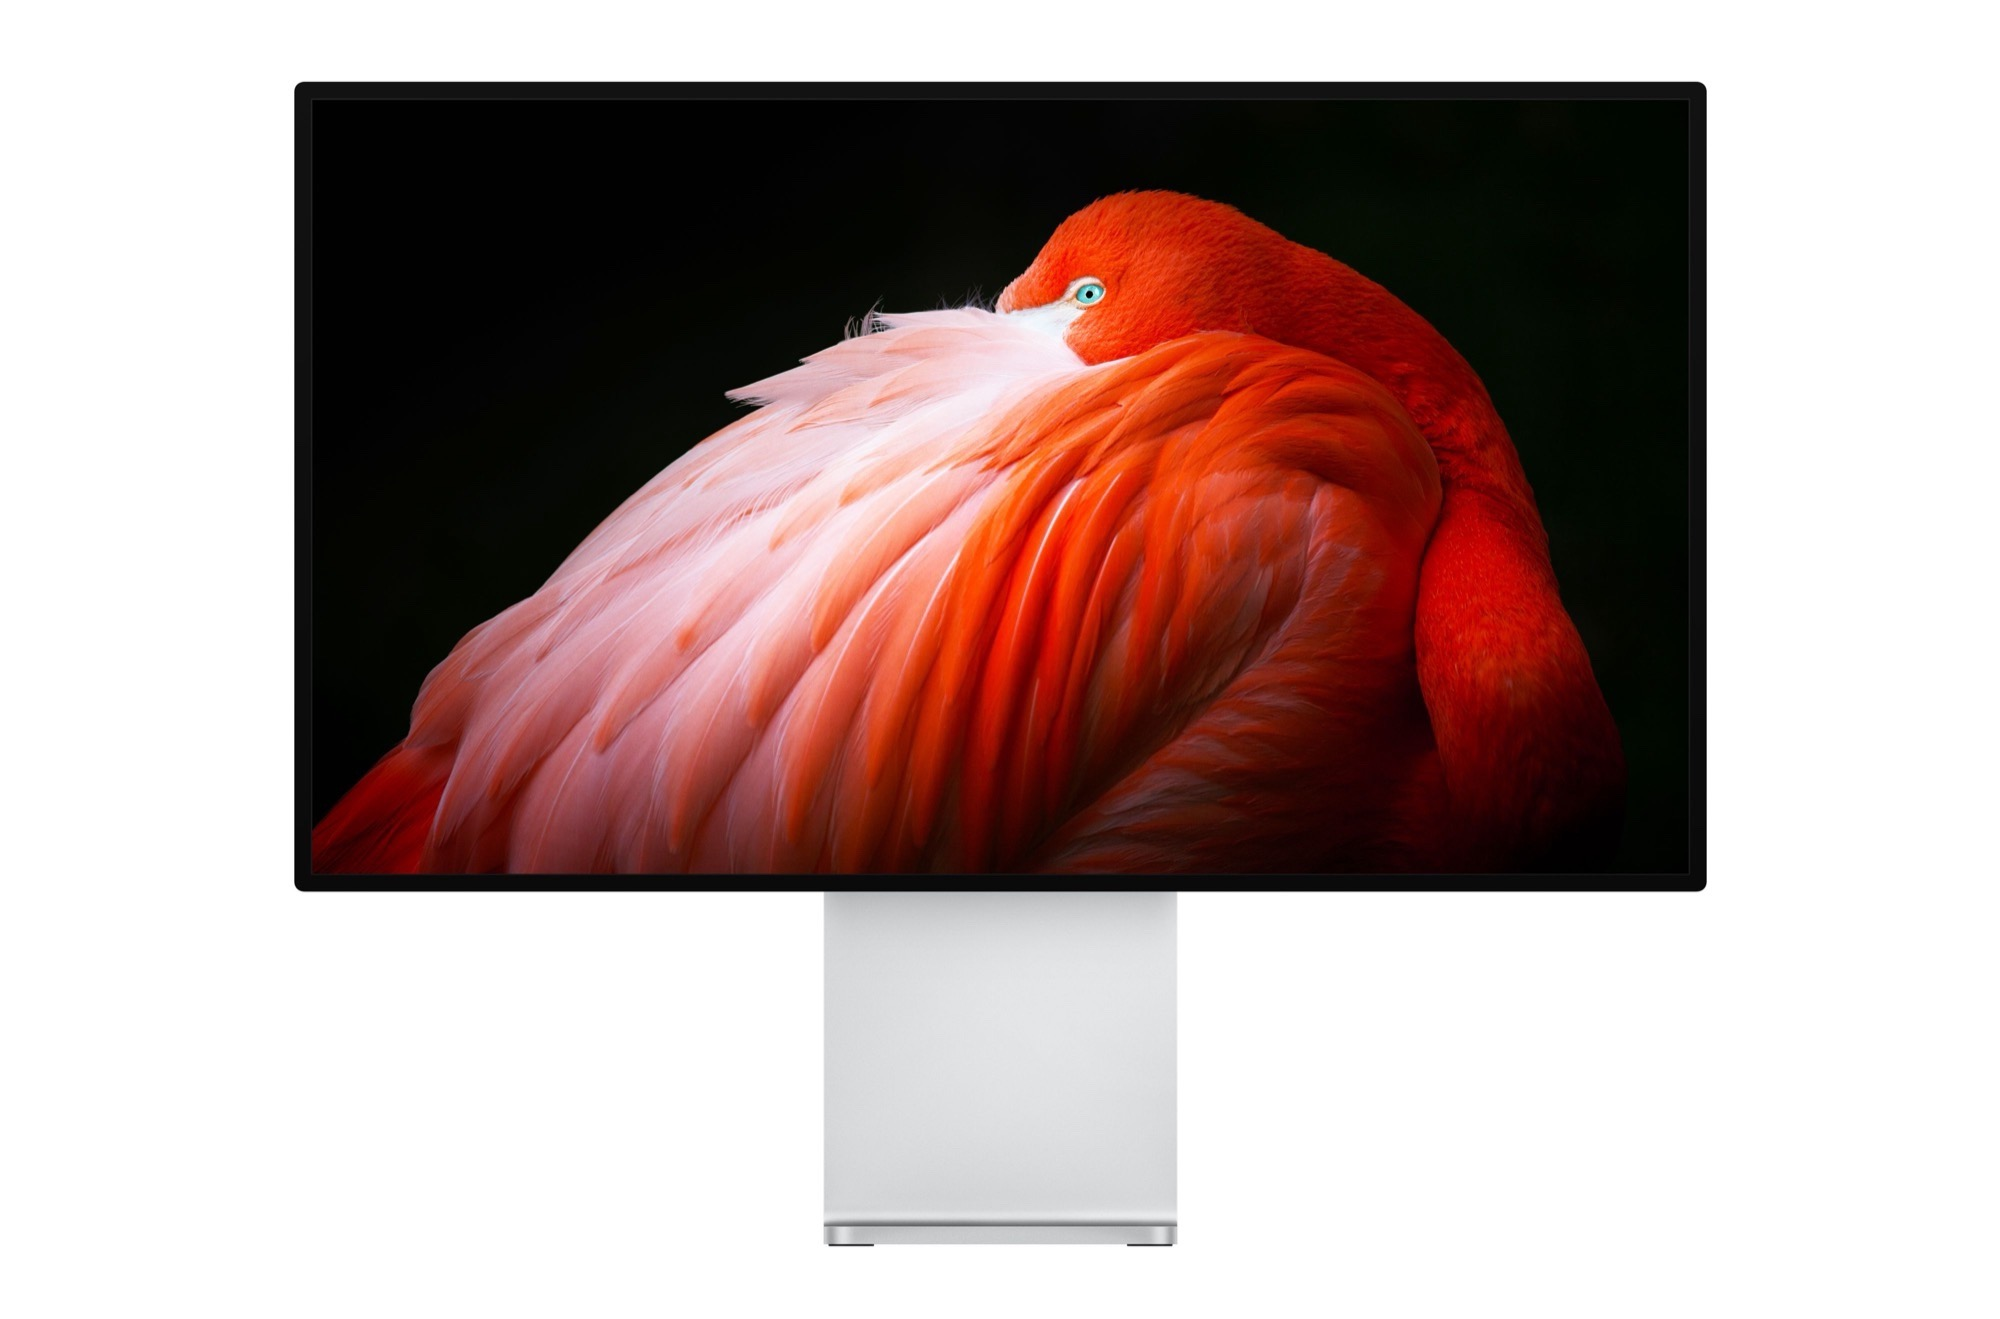 Apple has been making misleading claims about its Pro Display XDR thumbnail